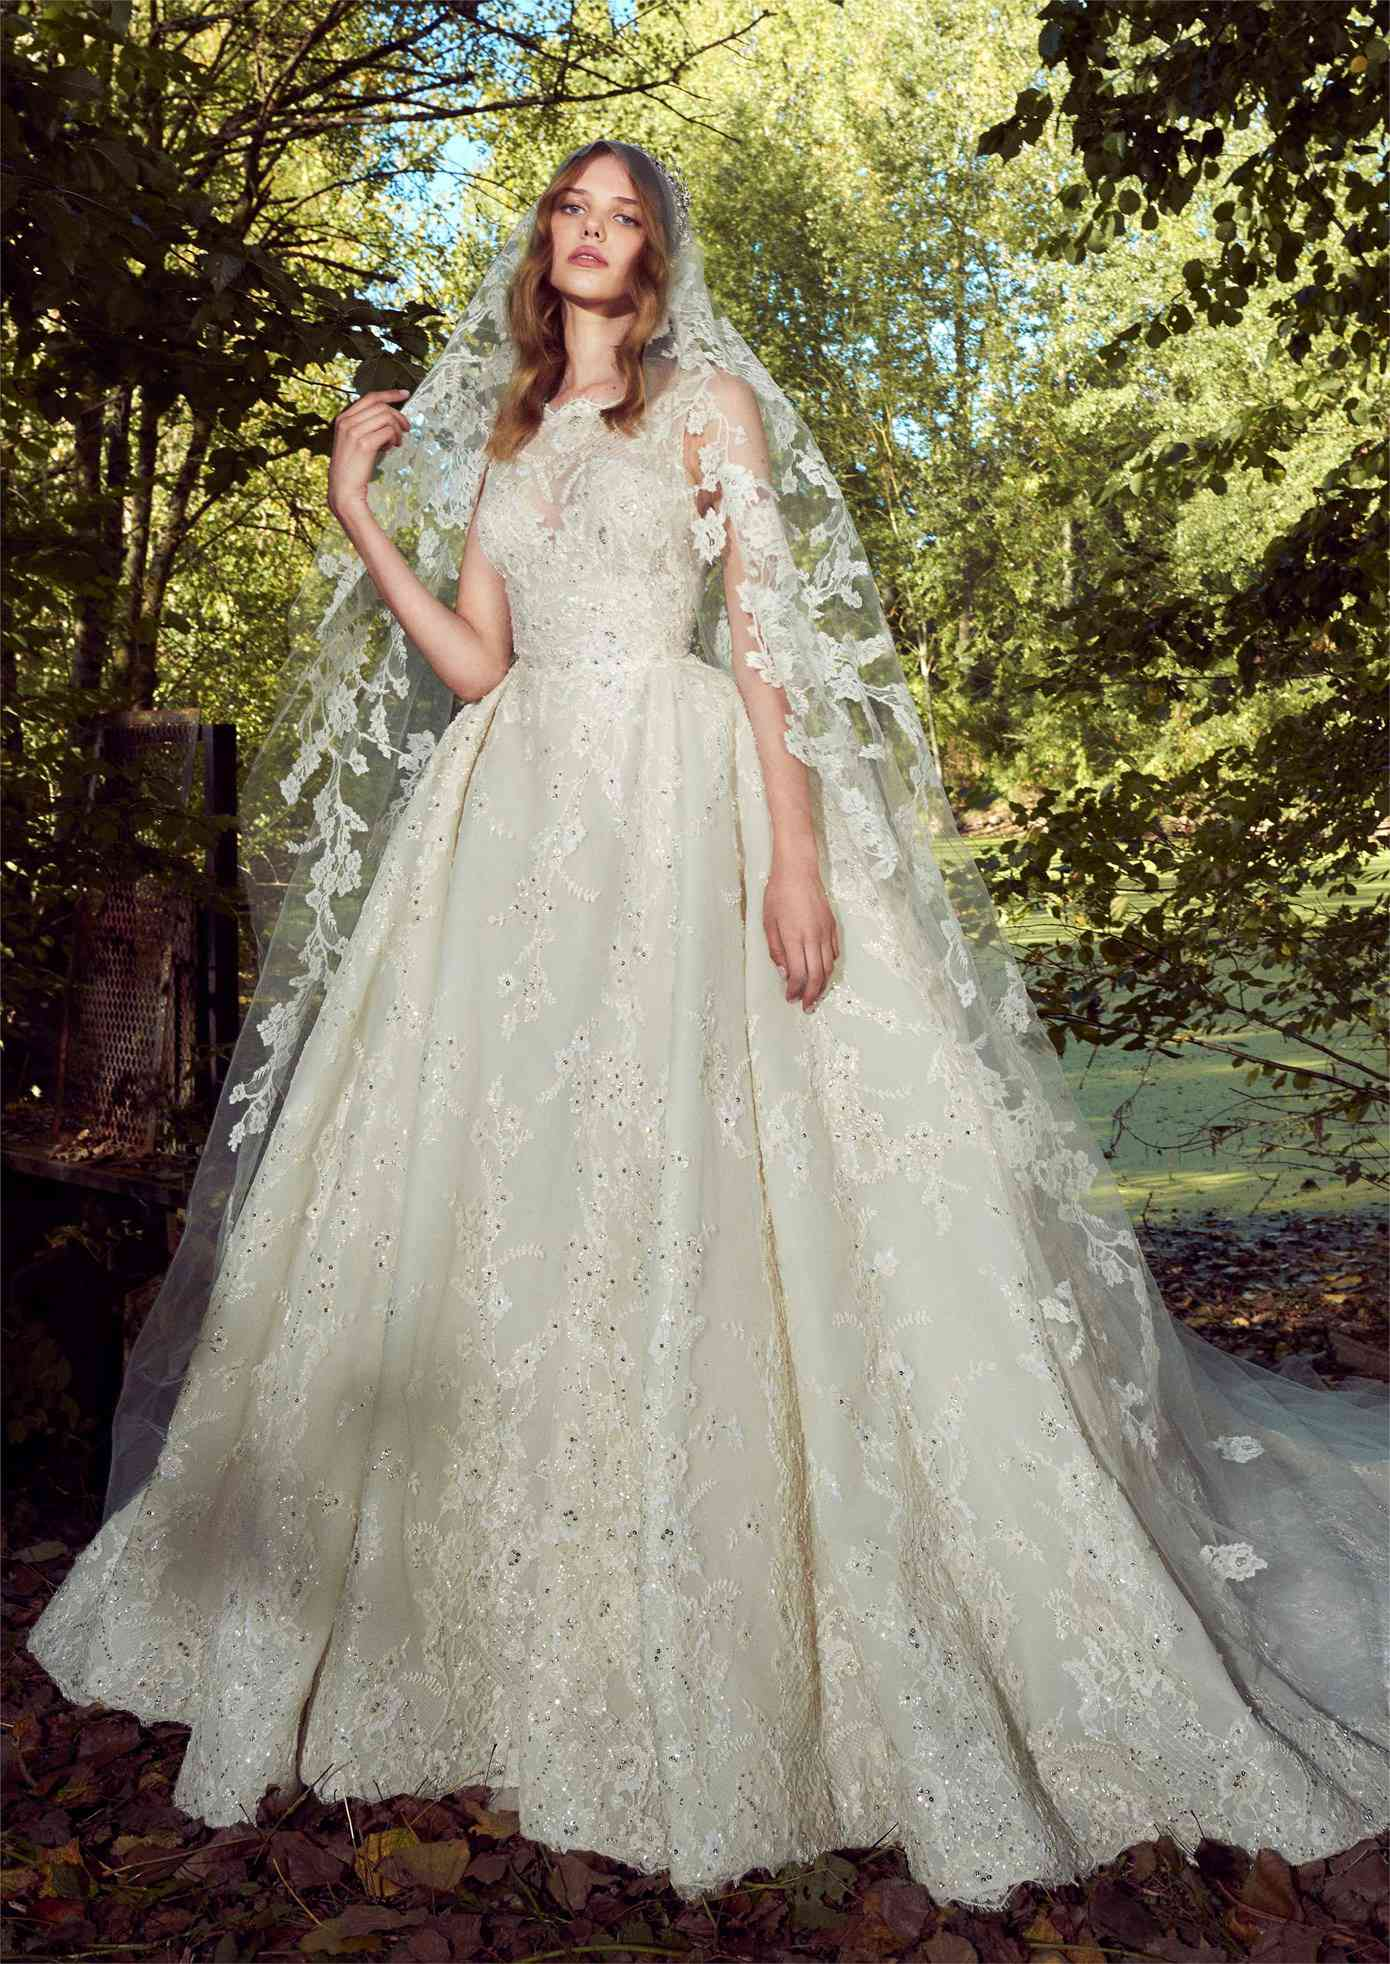 Model in an off-white high-neck sleeveless ballgown with allover sequined floral lace embroidery with a matching veil